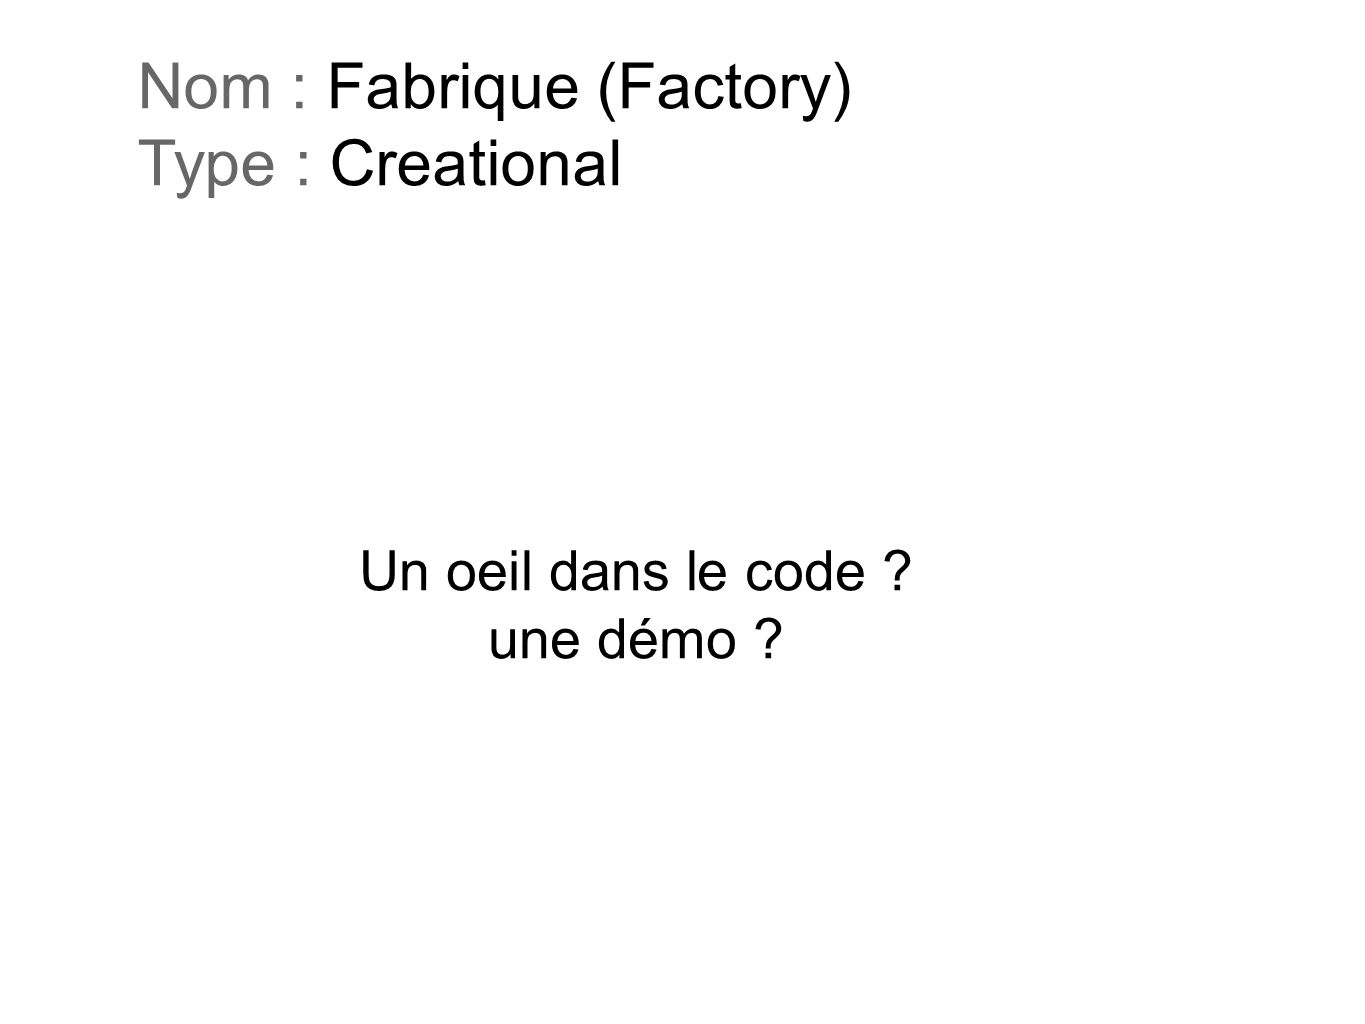 Nom : Fabrique (Factory) Type : Creational